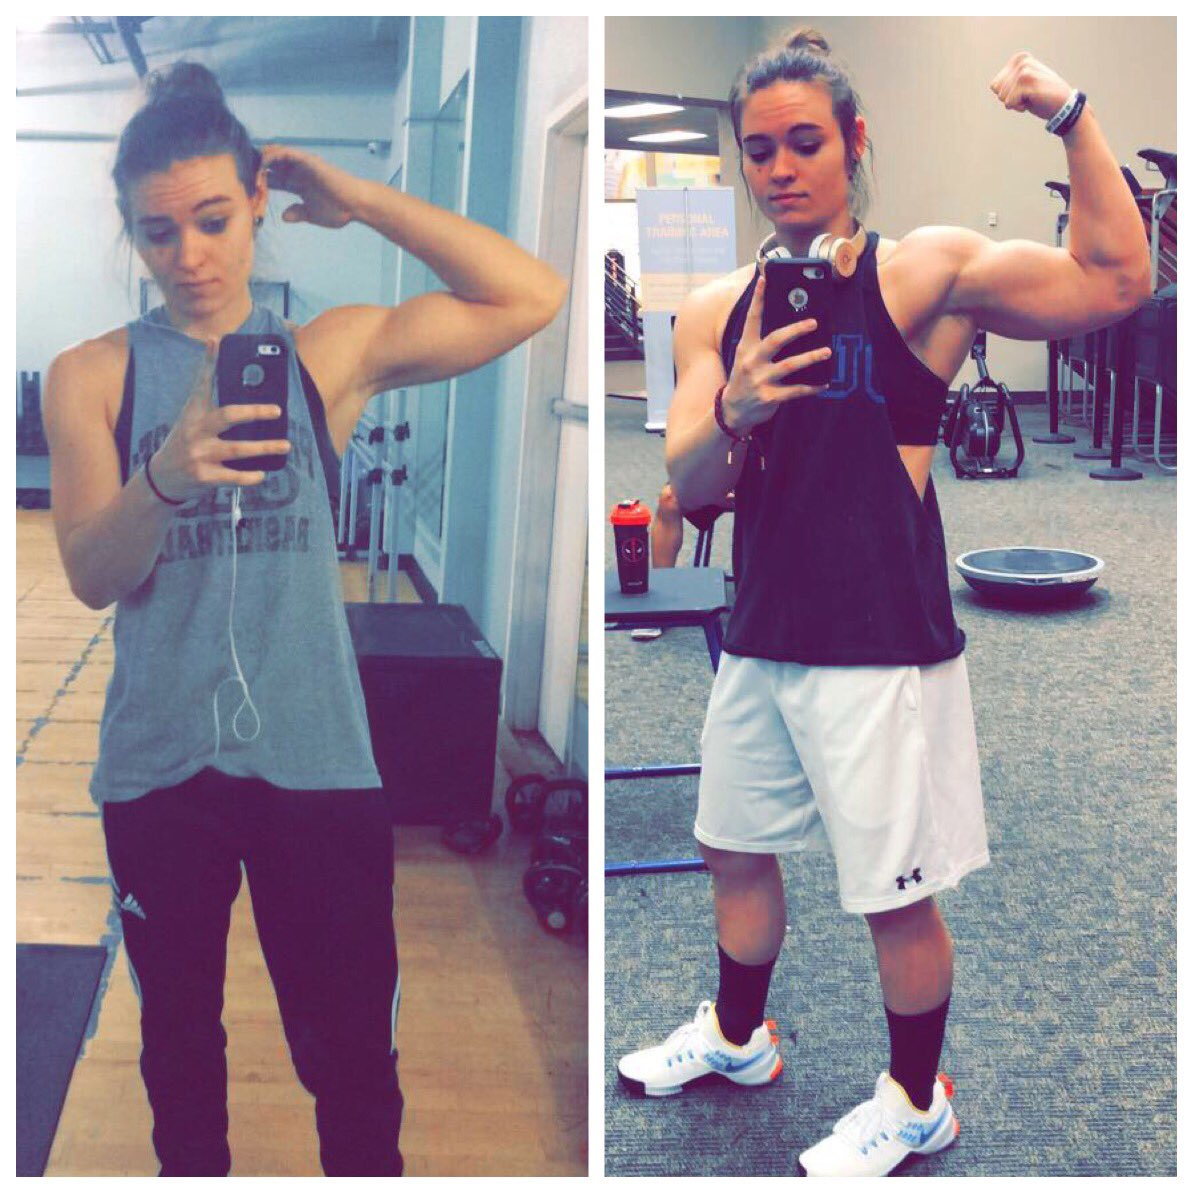 good things might come to those who wait, but they'll come quicker to those who work their ass off #FlexFriday #girlswholift #TrustTheProcess